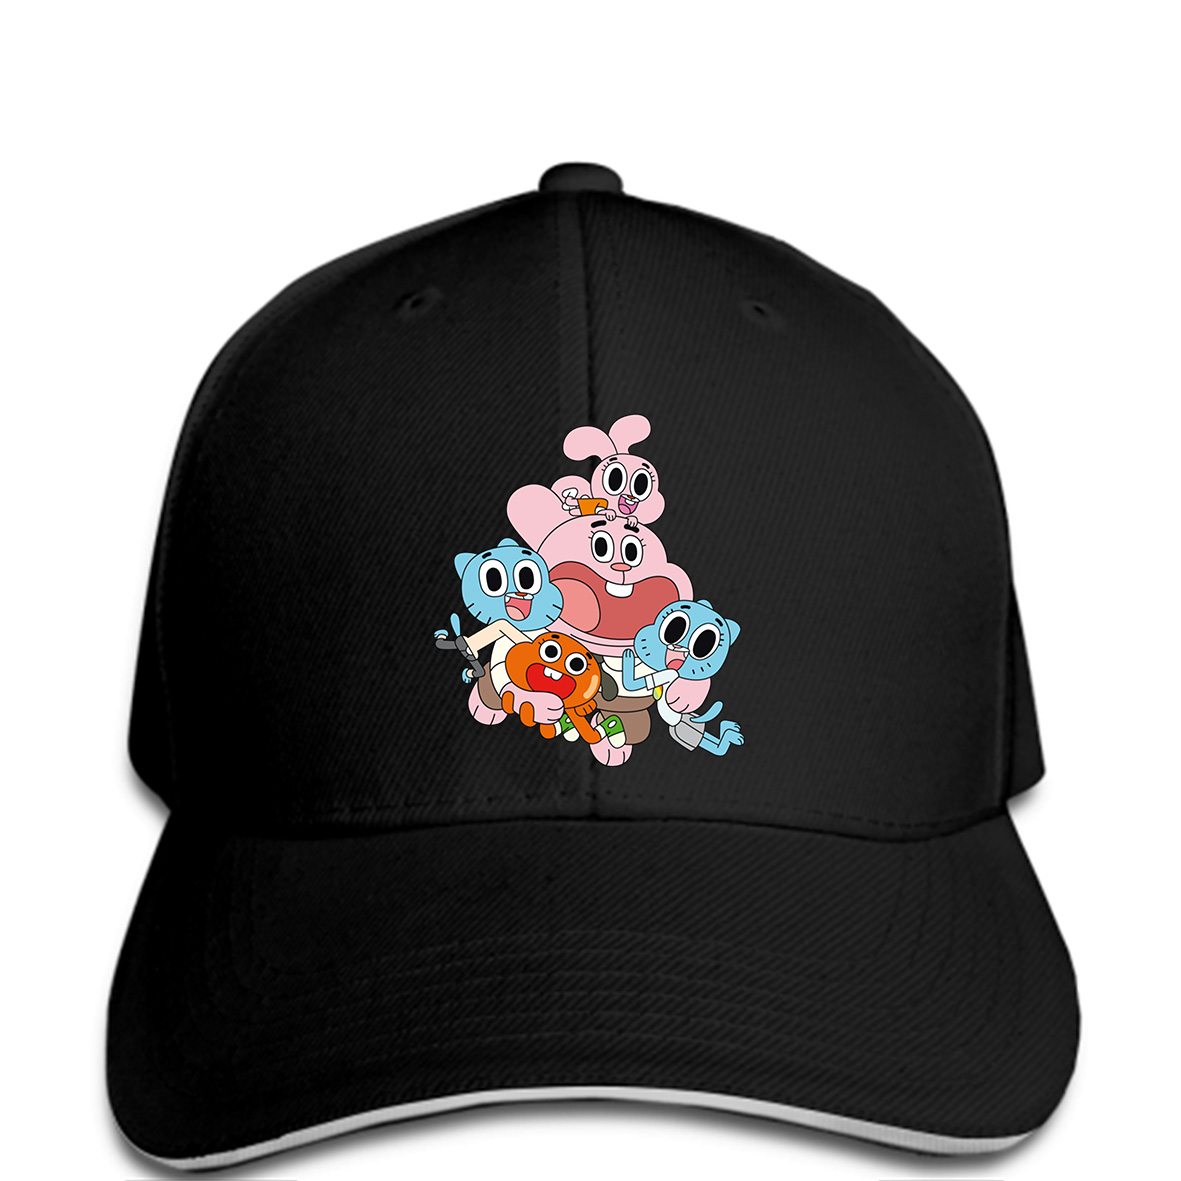 Baseball-Cap World-Of-Gumball Cheap Hat Tsnapback Novelty Fashion Women The For Funny